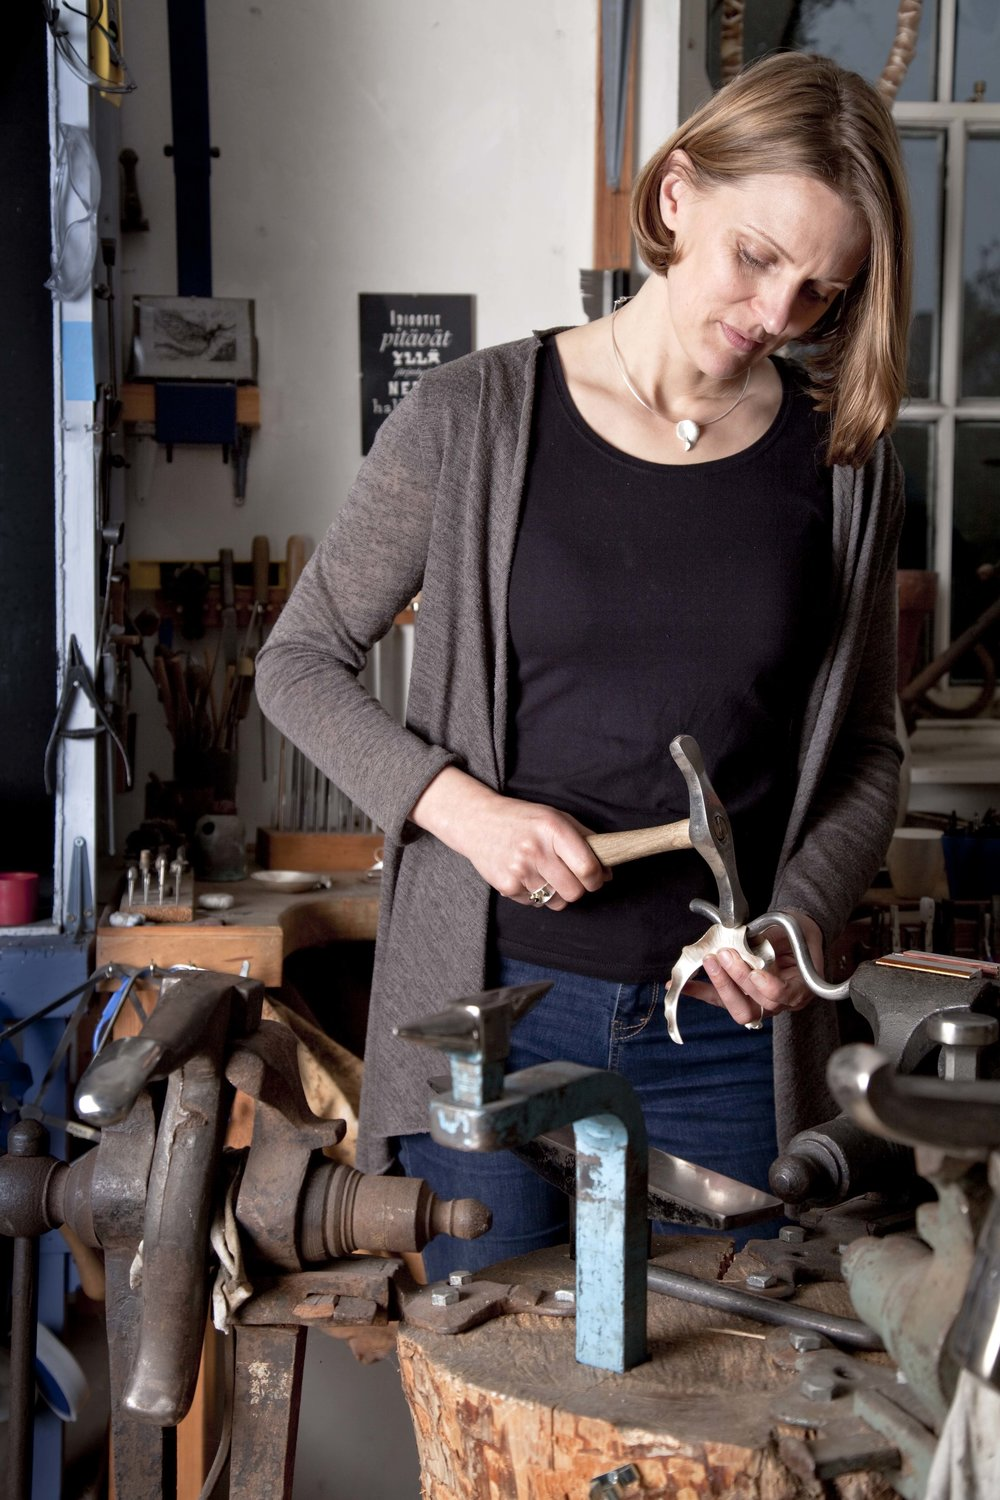 Designer in the studio - all of our collection is studio made by goldsmiths and silversmiths